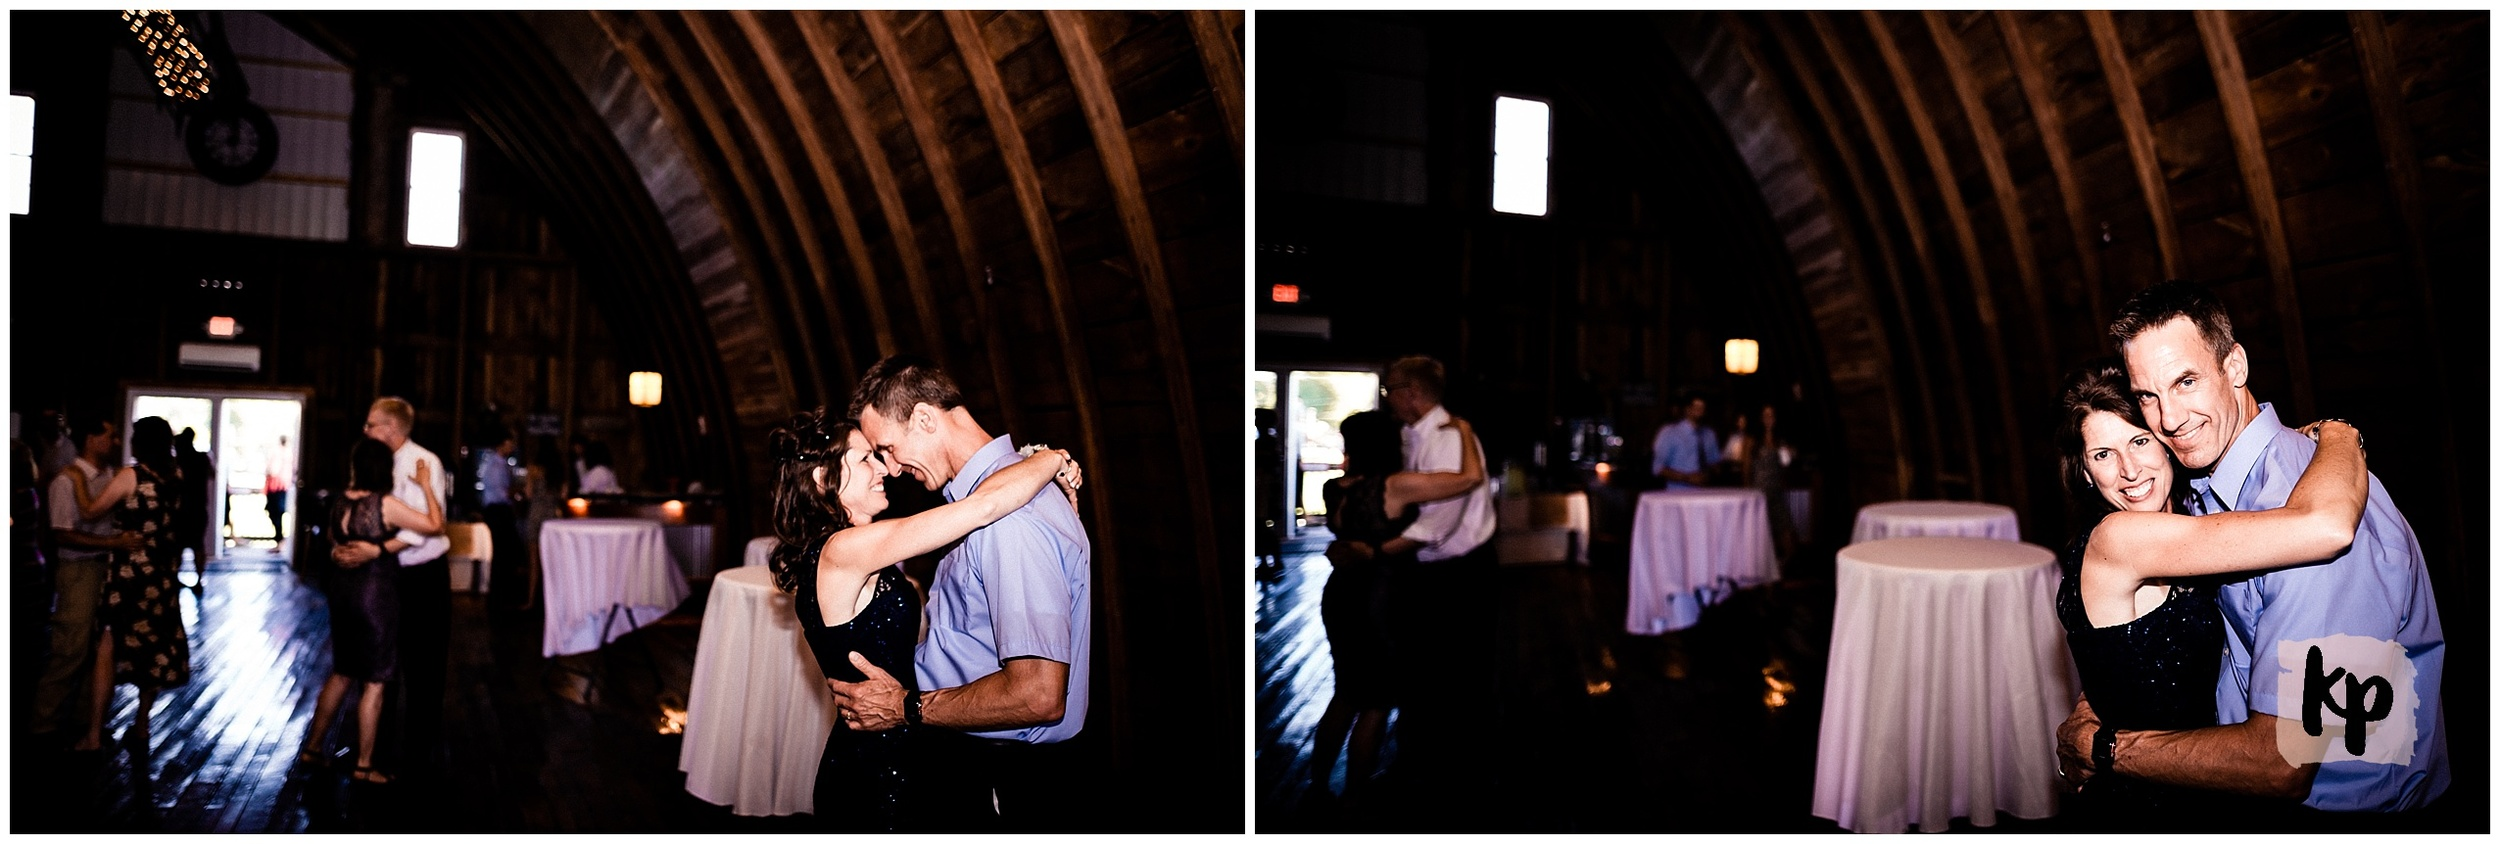 Andrew + Jessica | Just Married #kyleepaigephotography_0221.jpg